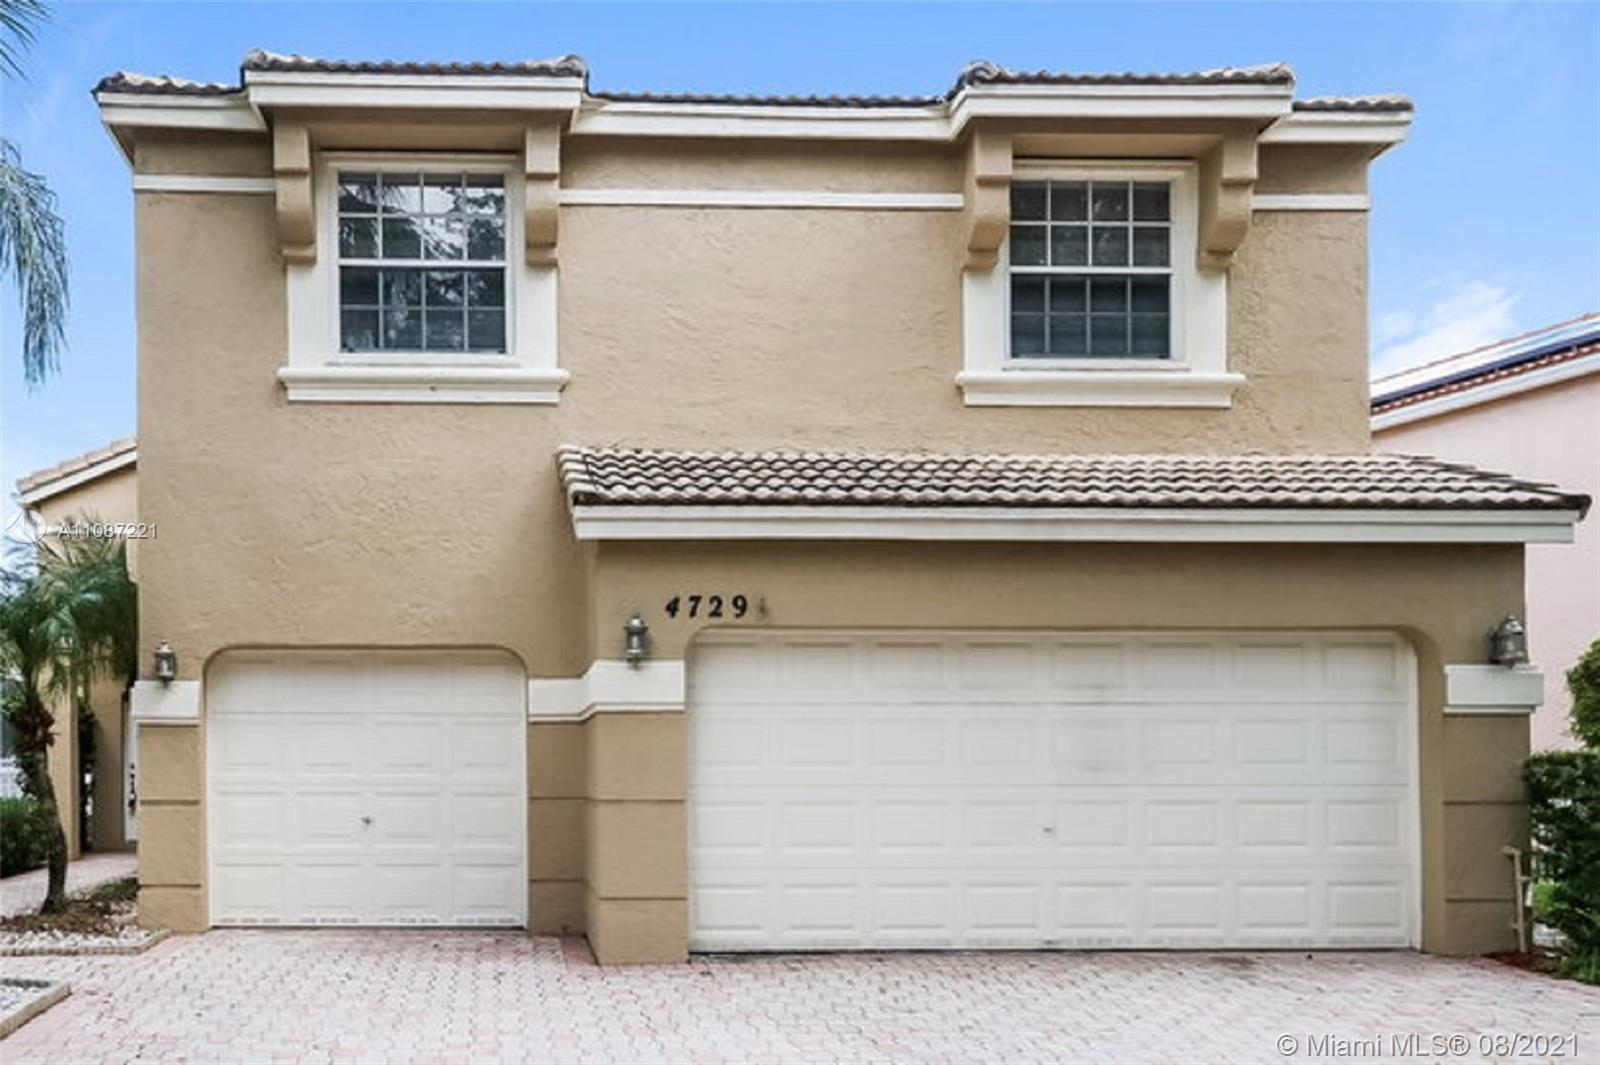 Property for sale at 4729 NW 115th Ave, Coral Springs,  Florida 33076